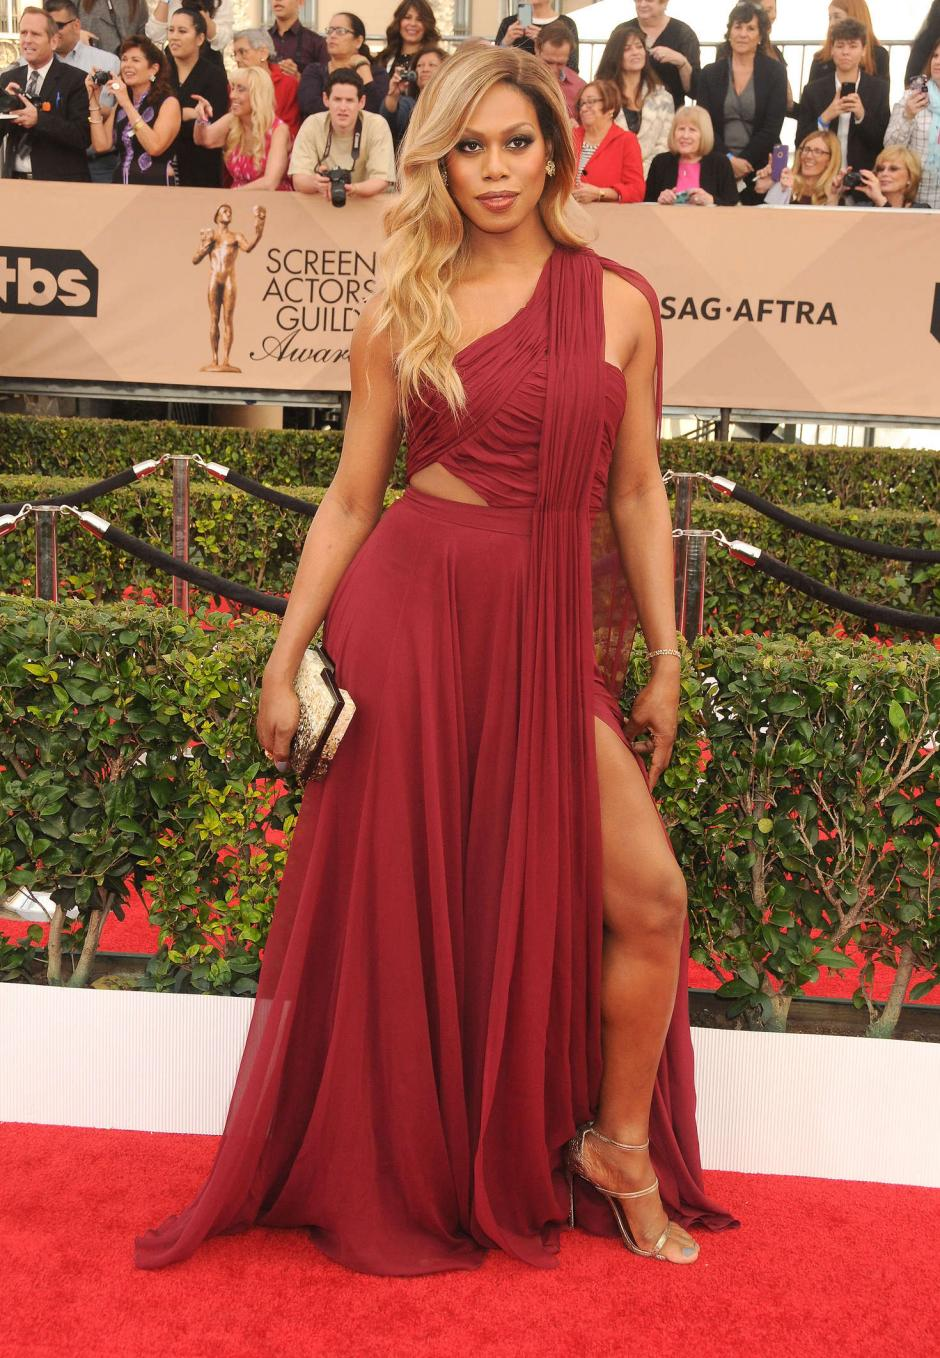 La actriz Laverne Cox llega a la 22ª edición de los SAG Awards o Screen Actors Guild Awards. (Foto:EFE / Paul Buck)